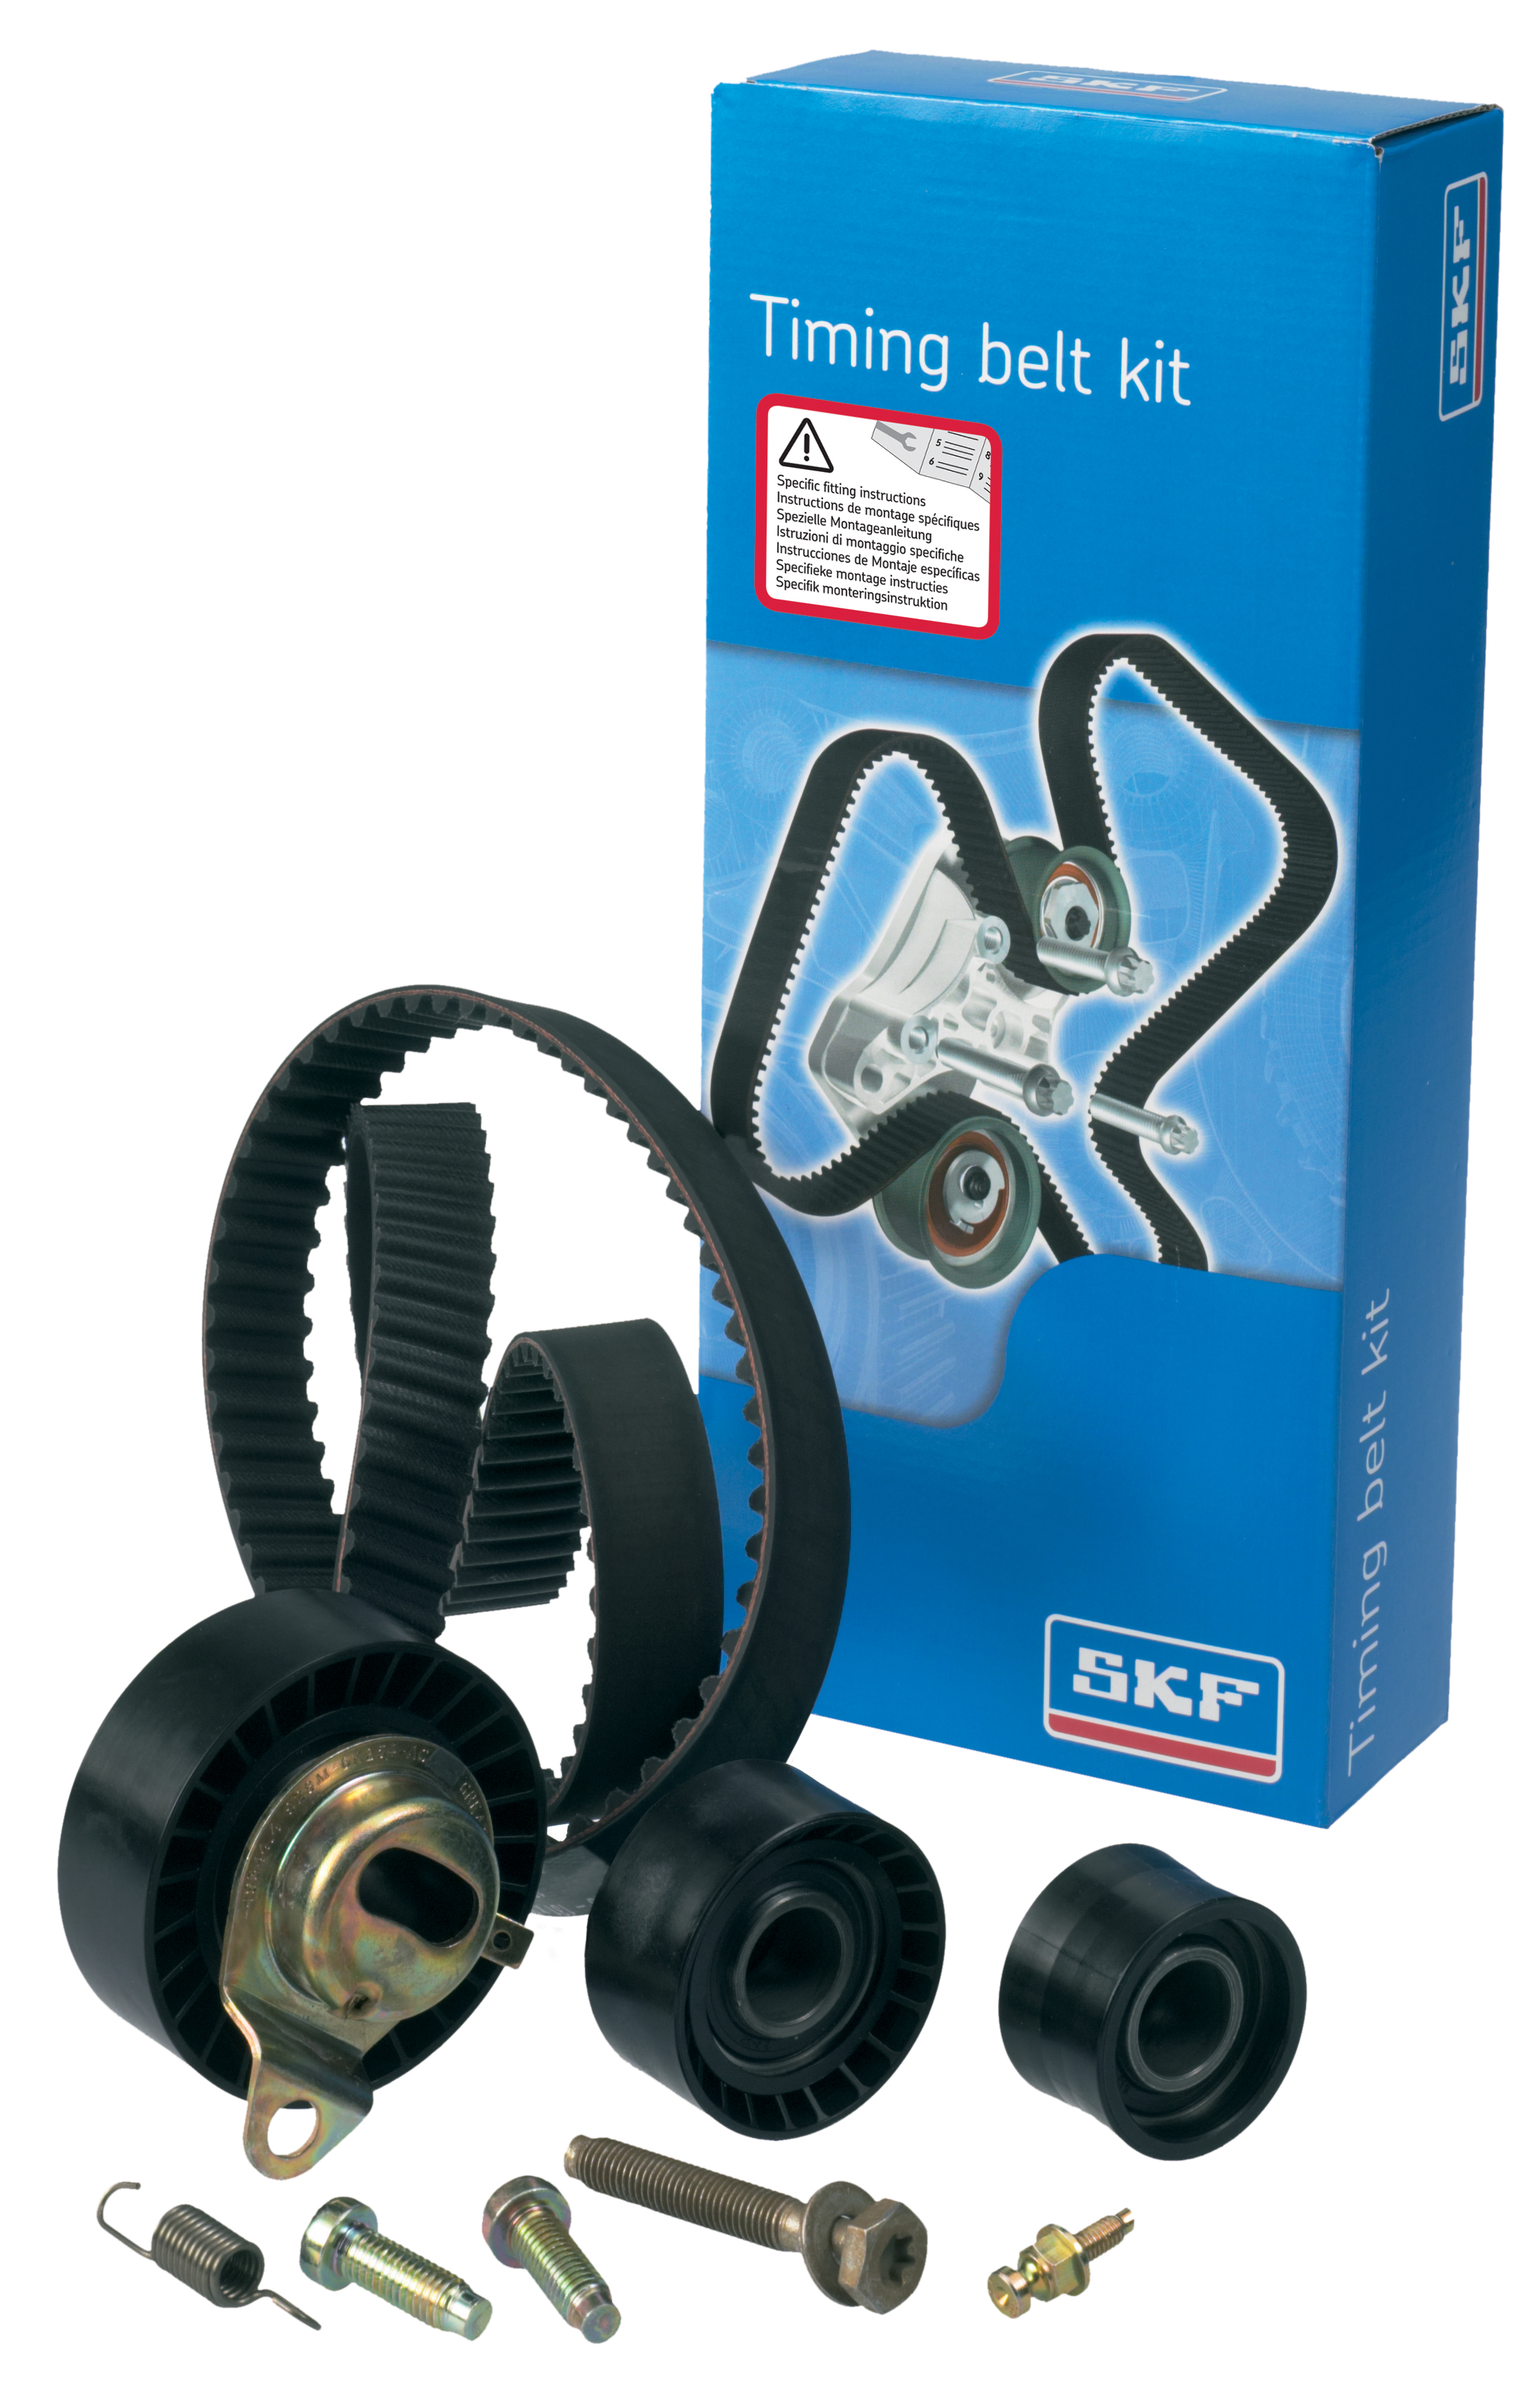 SKF Adds To Timing Belt Range At Serfac